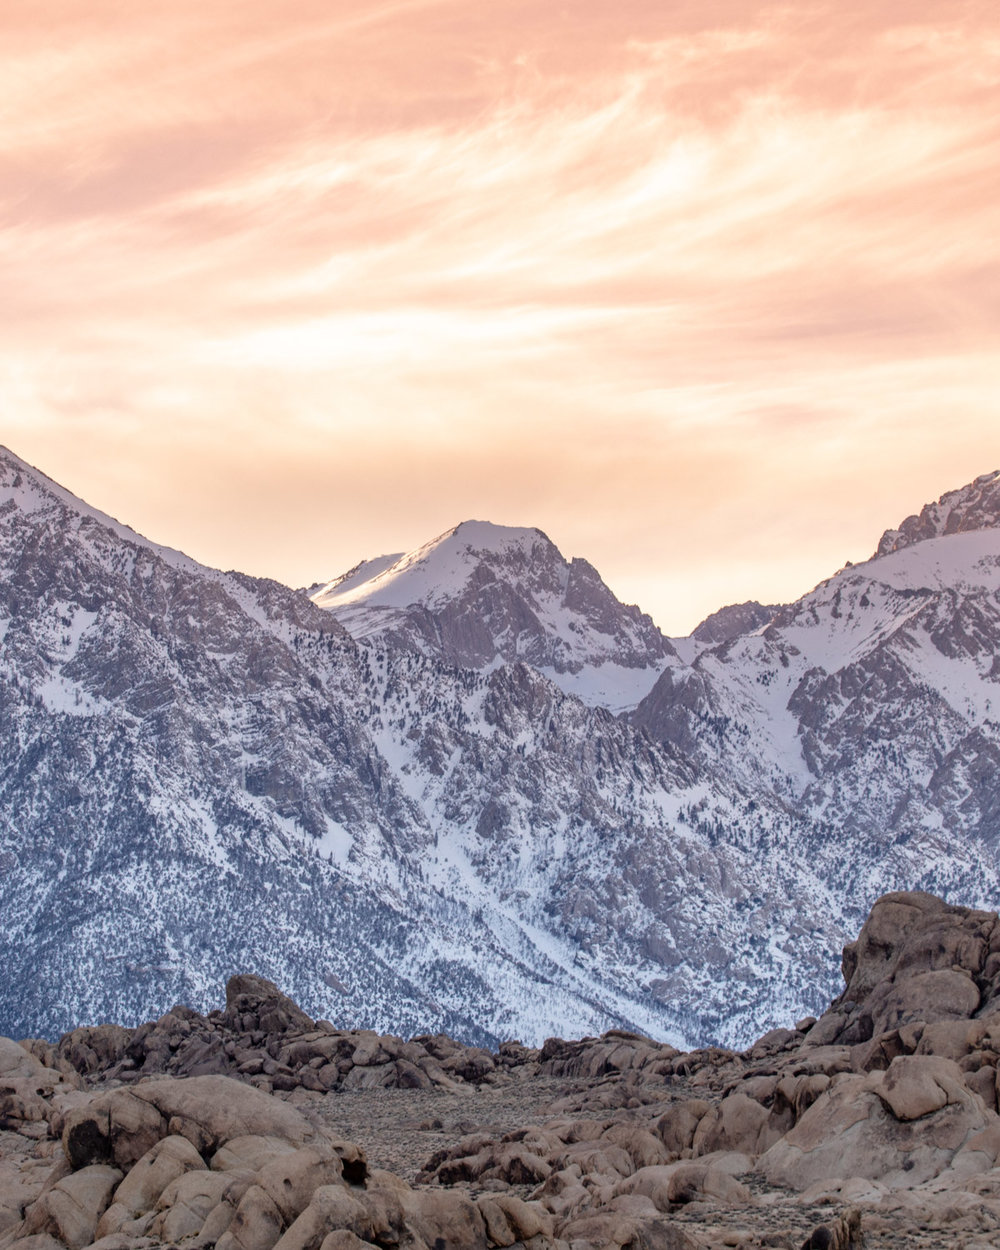 One of the Sierra Mountains at sunset